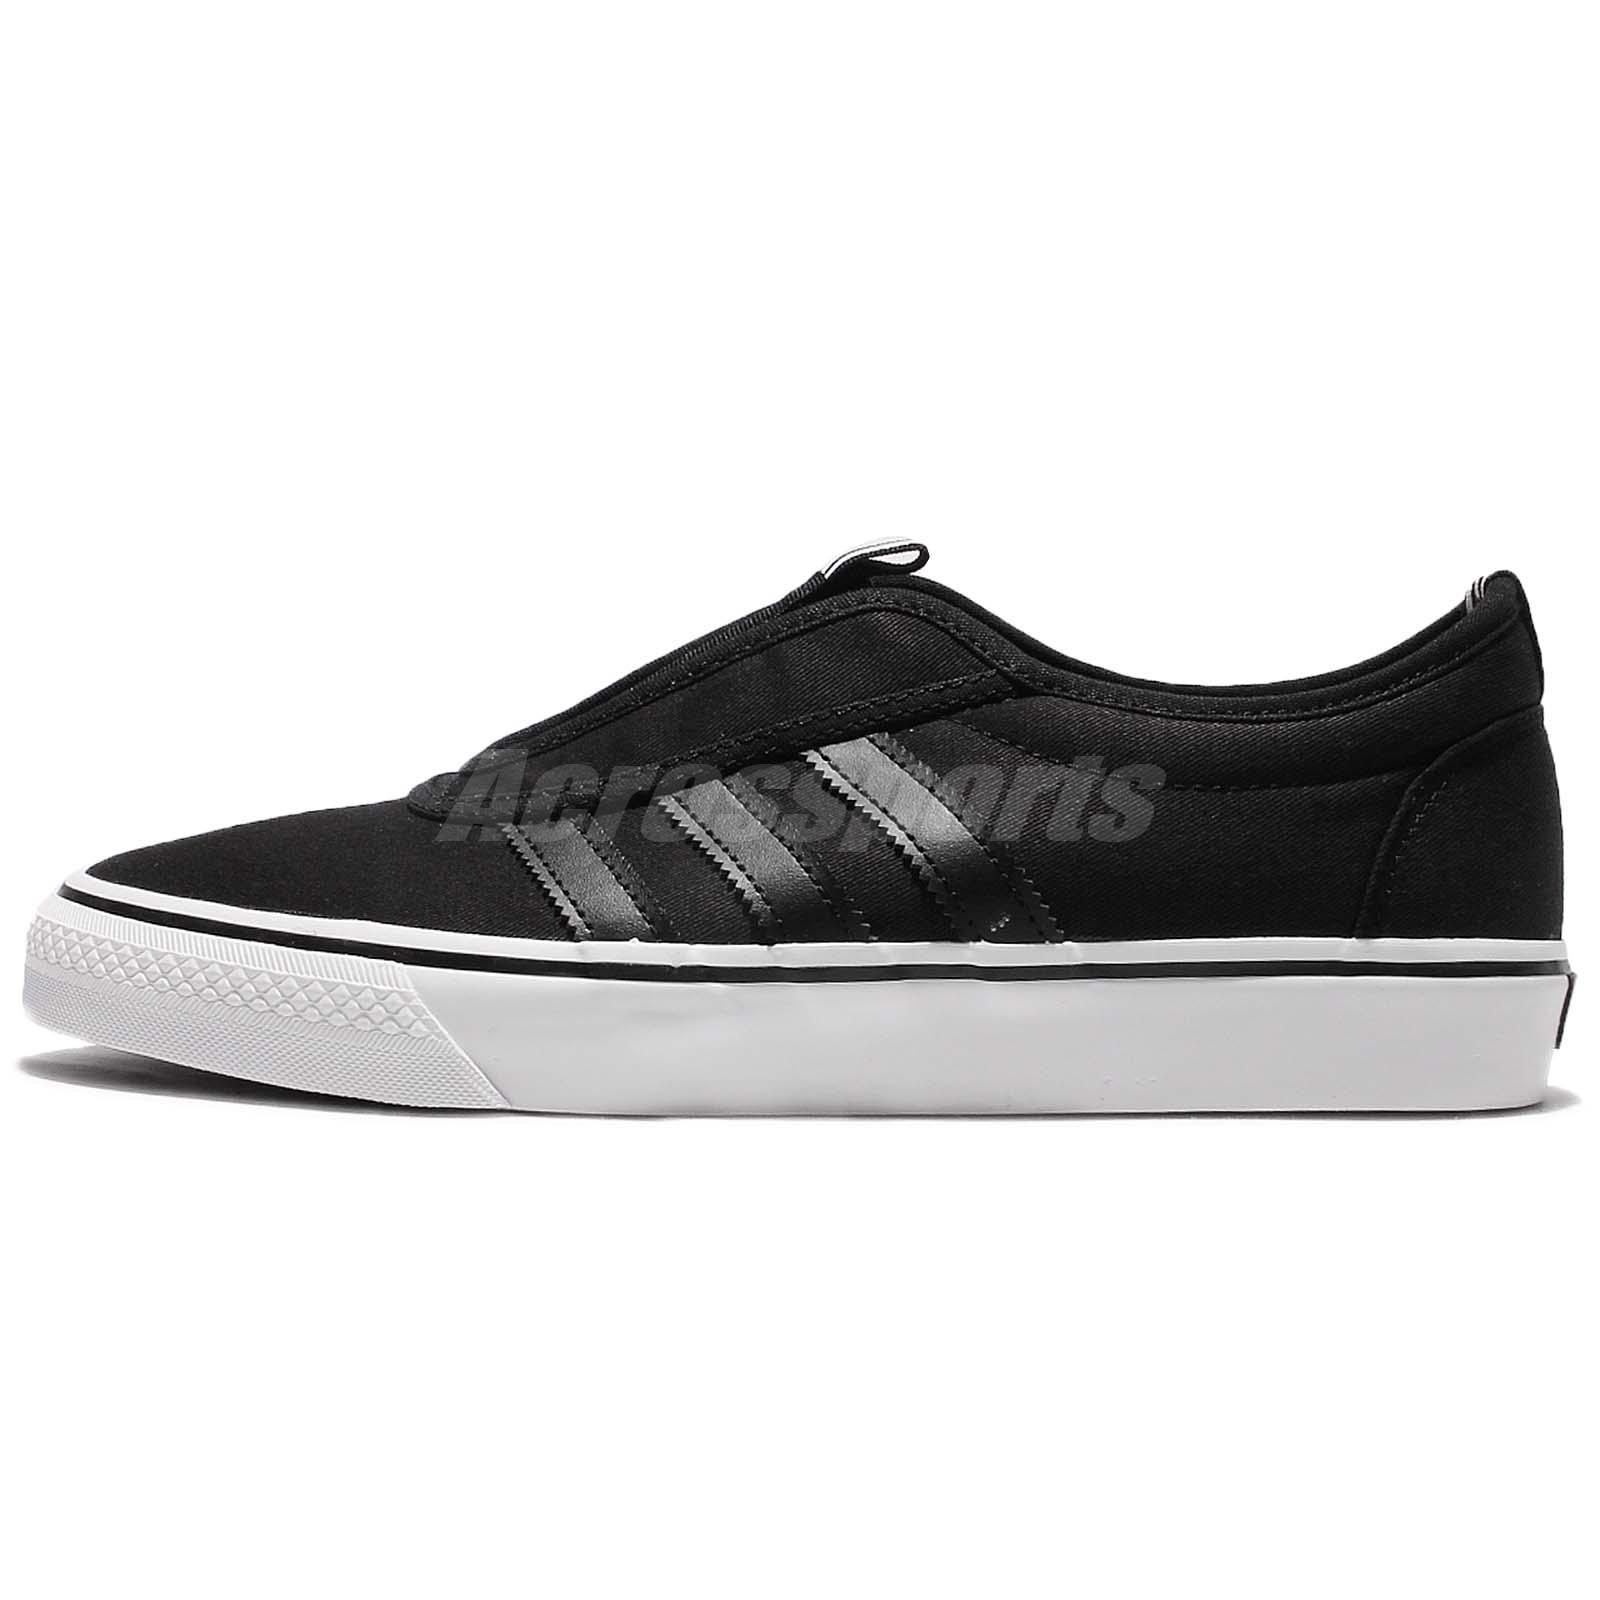 adidas Originals ADI-Ease Kung-Fu Black White Canvas Men Training Shoes BB8496